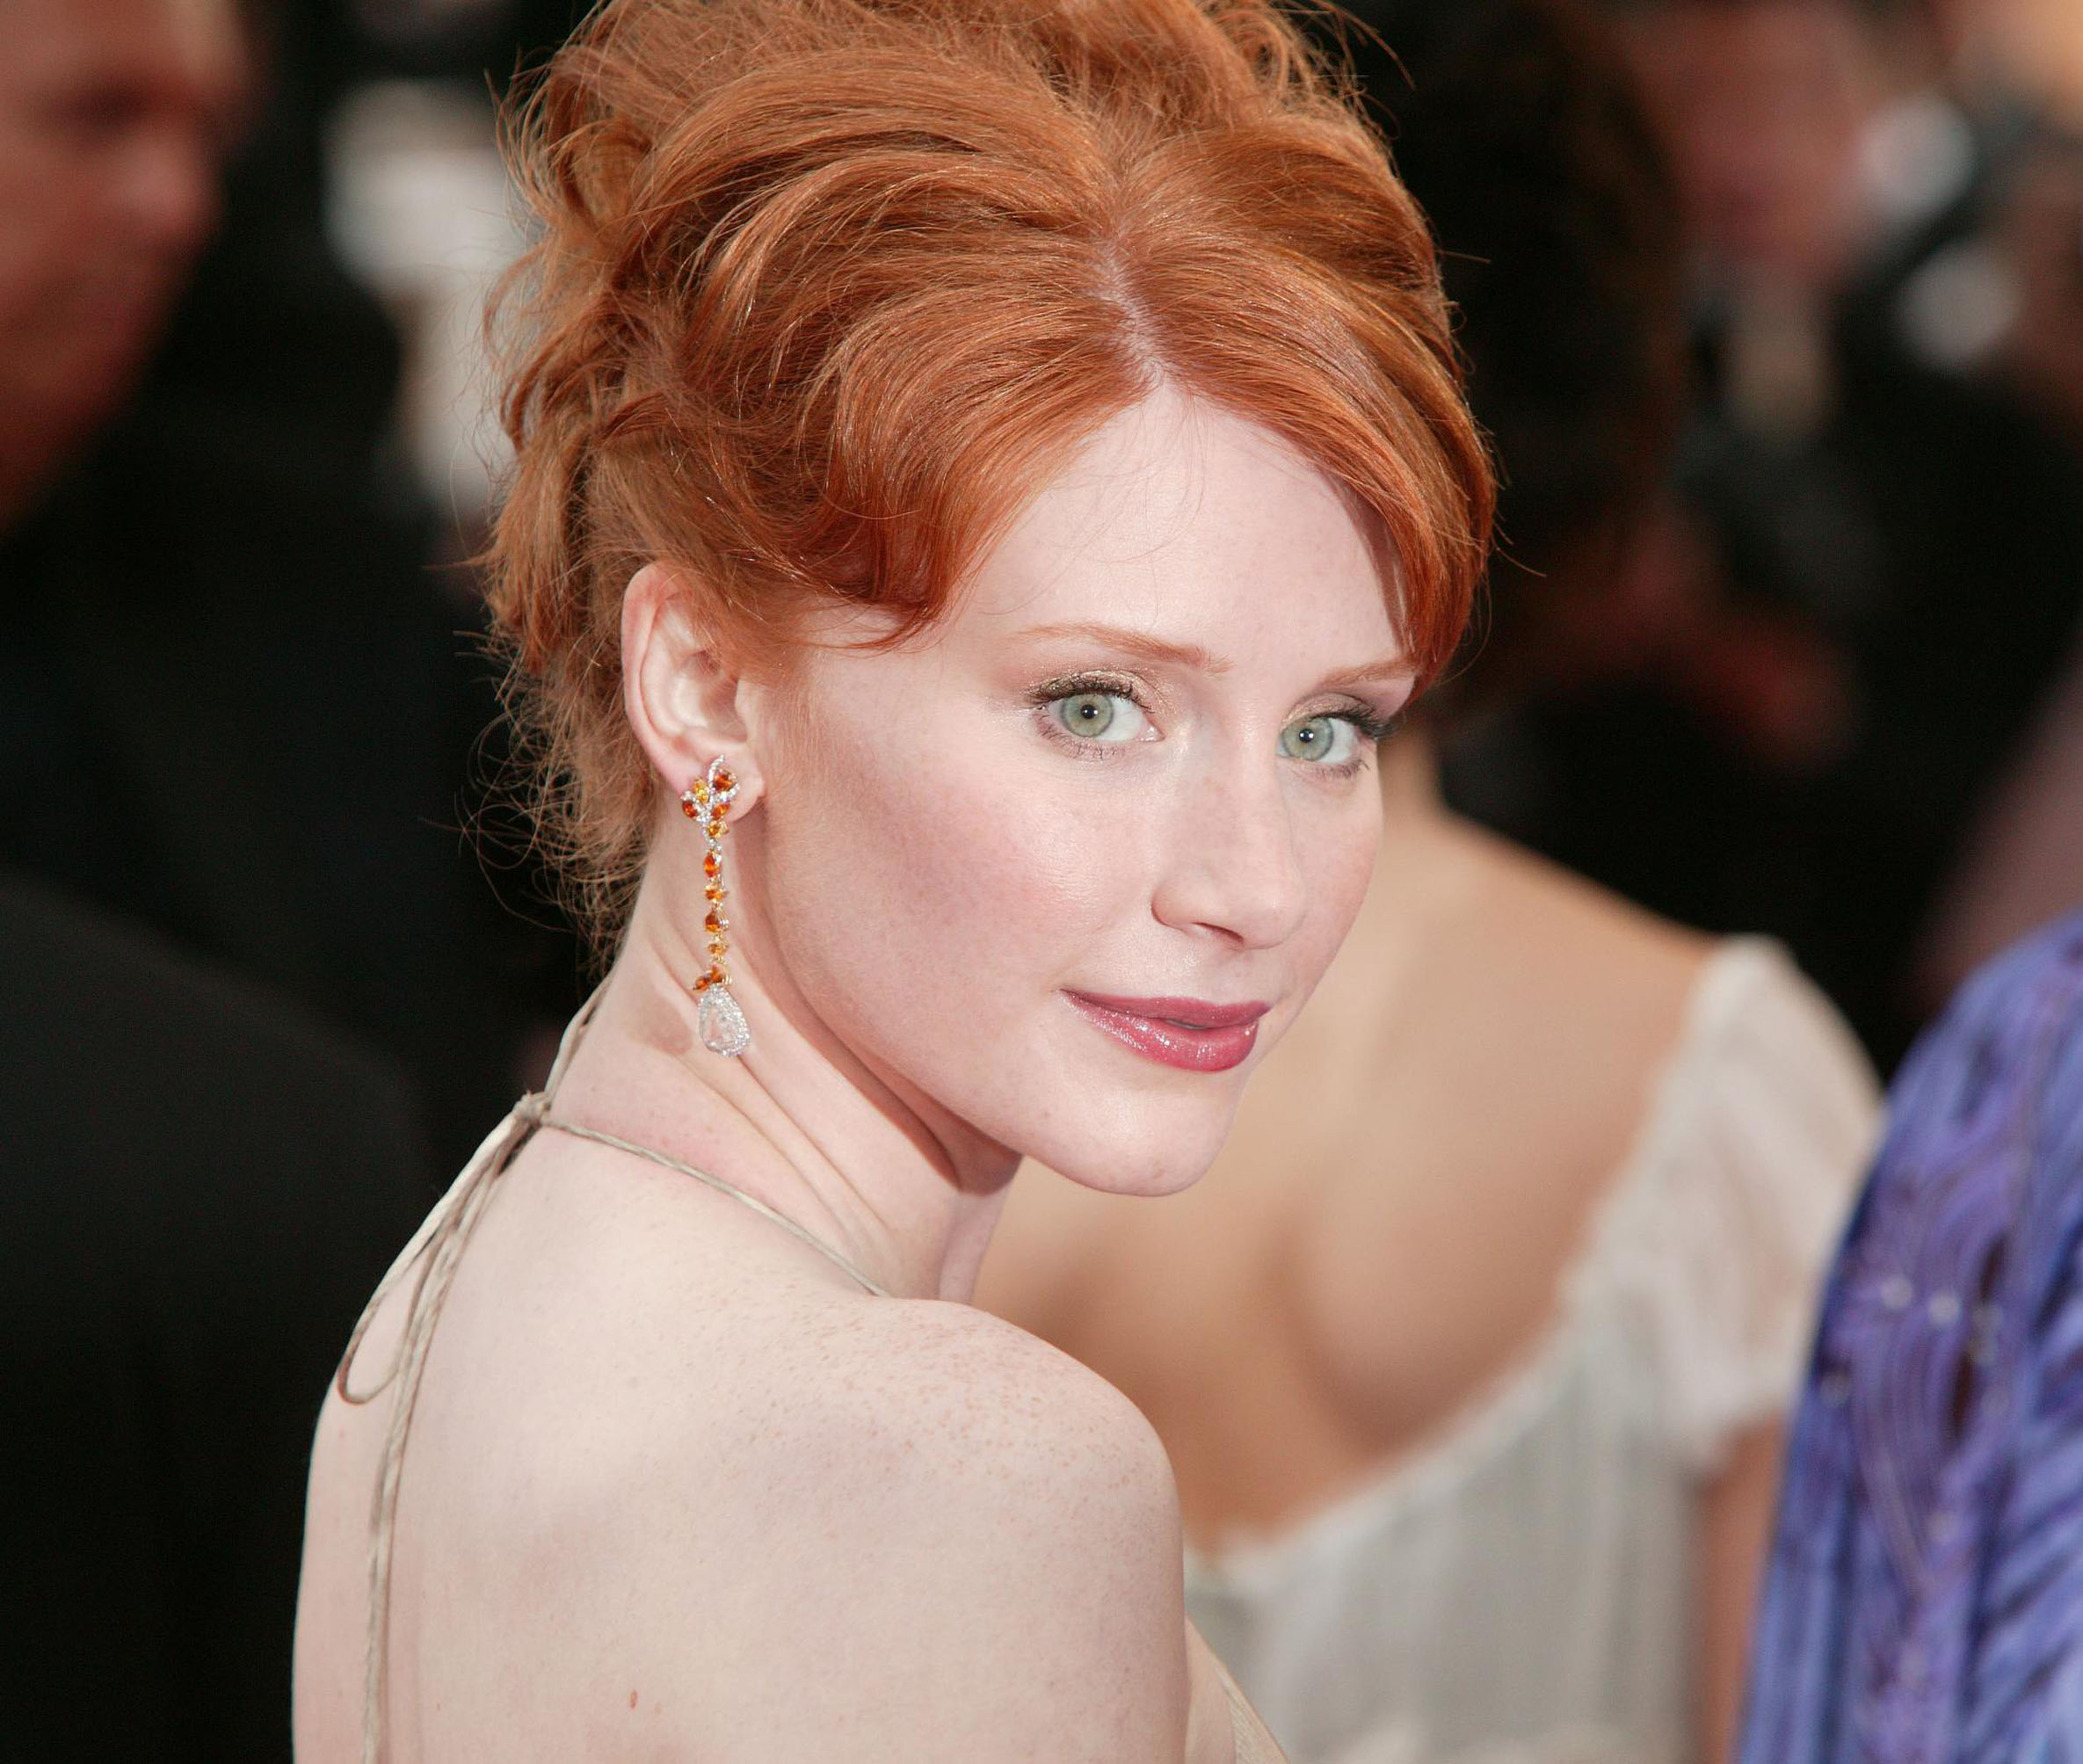 Bryce Dallas Howard new